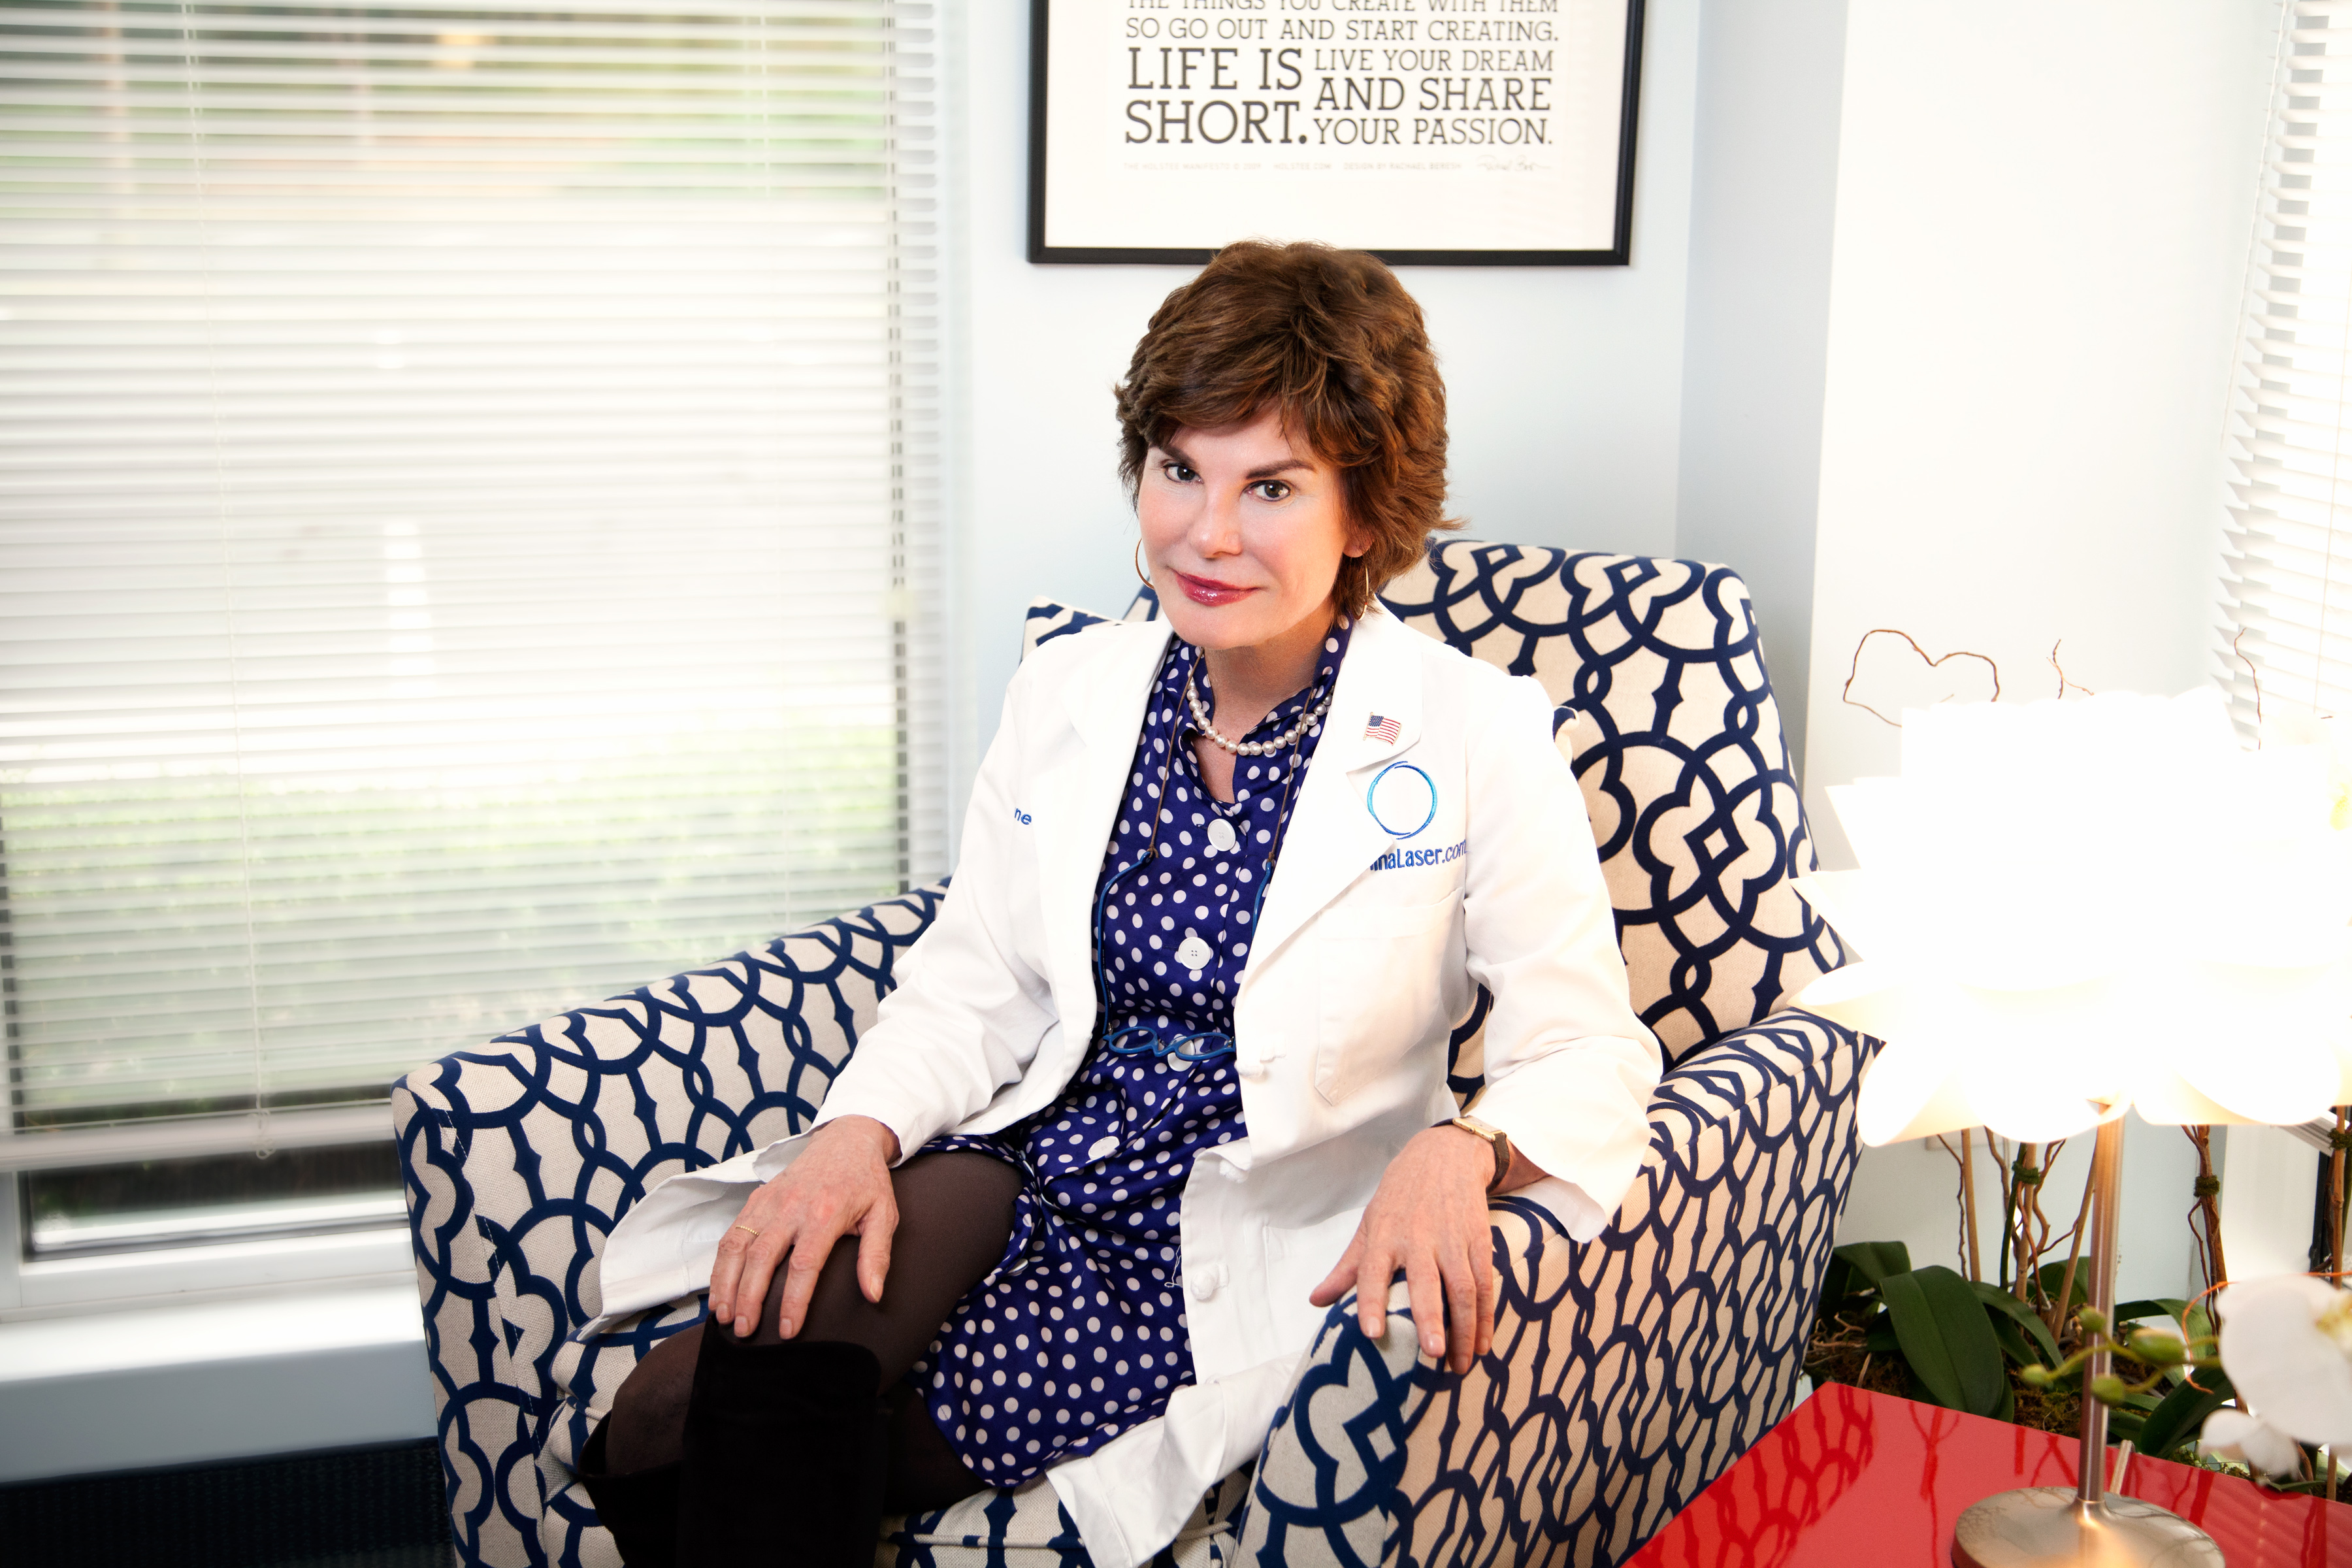 Dr. Anne White Of Carolina Laser And Cosmetic Center, Winston-Salem Introduces Cutting Edge, State Of The Art Laser Hair Removal Technologies